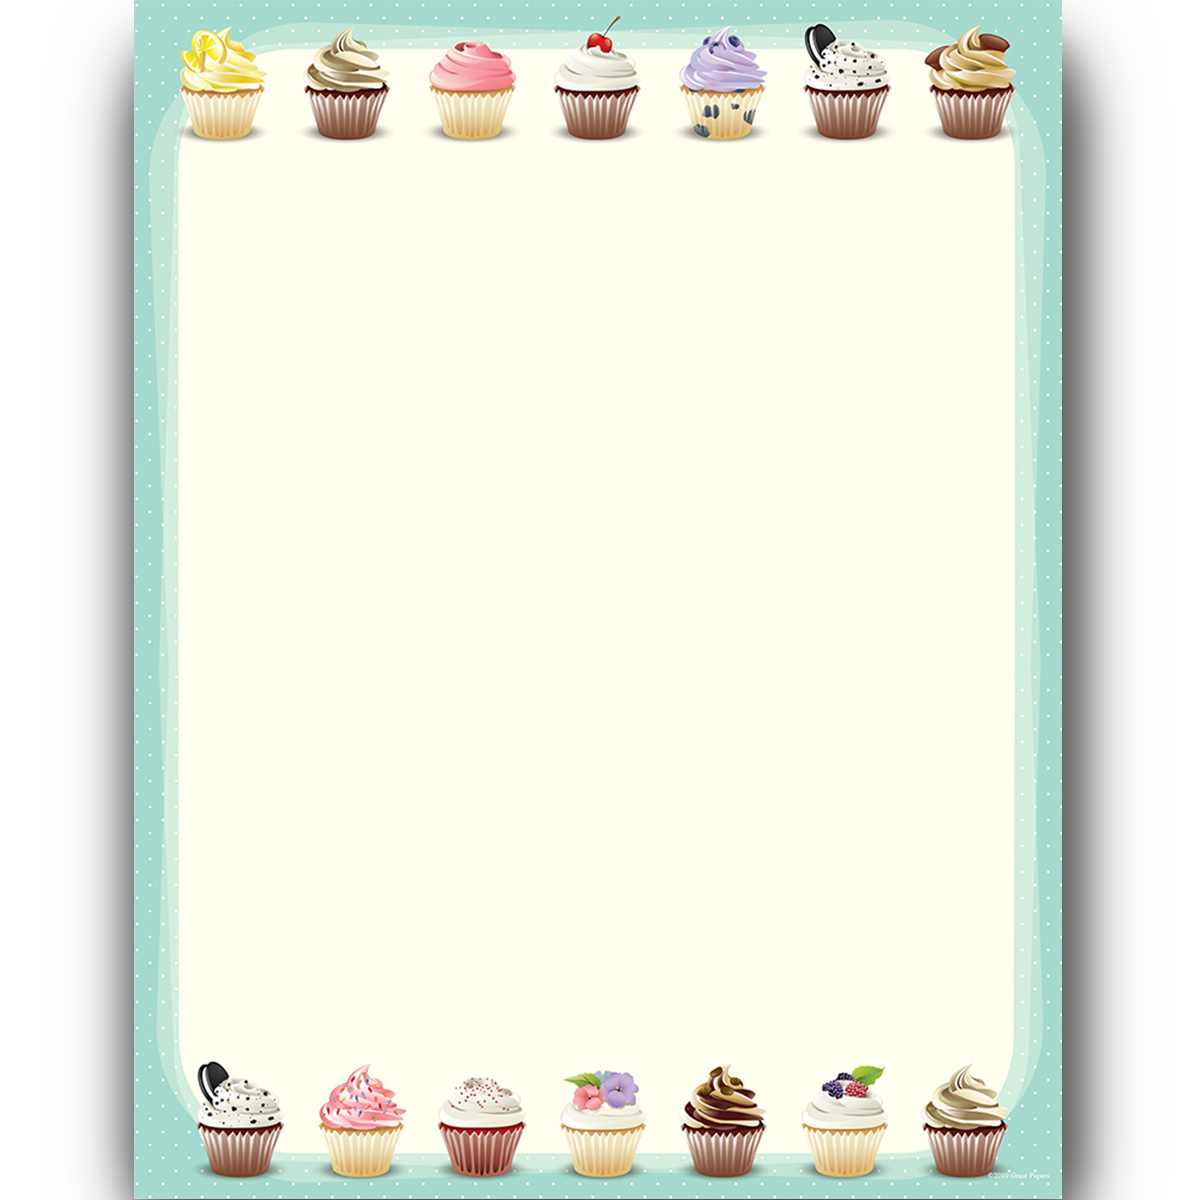 Iced Cupcakes *NEW